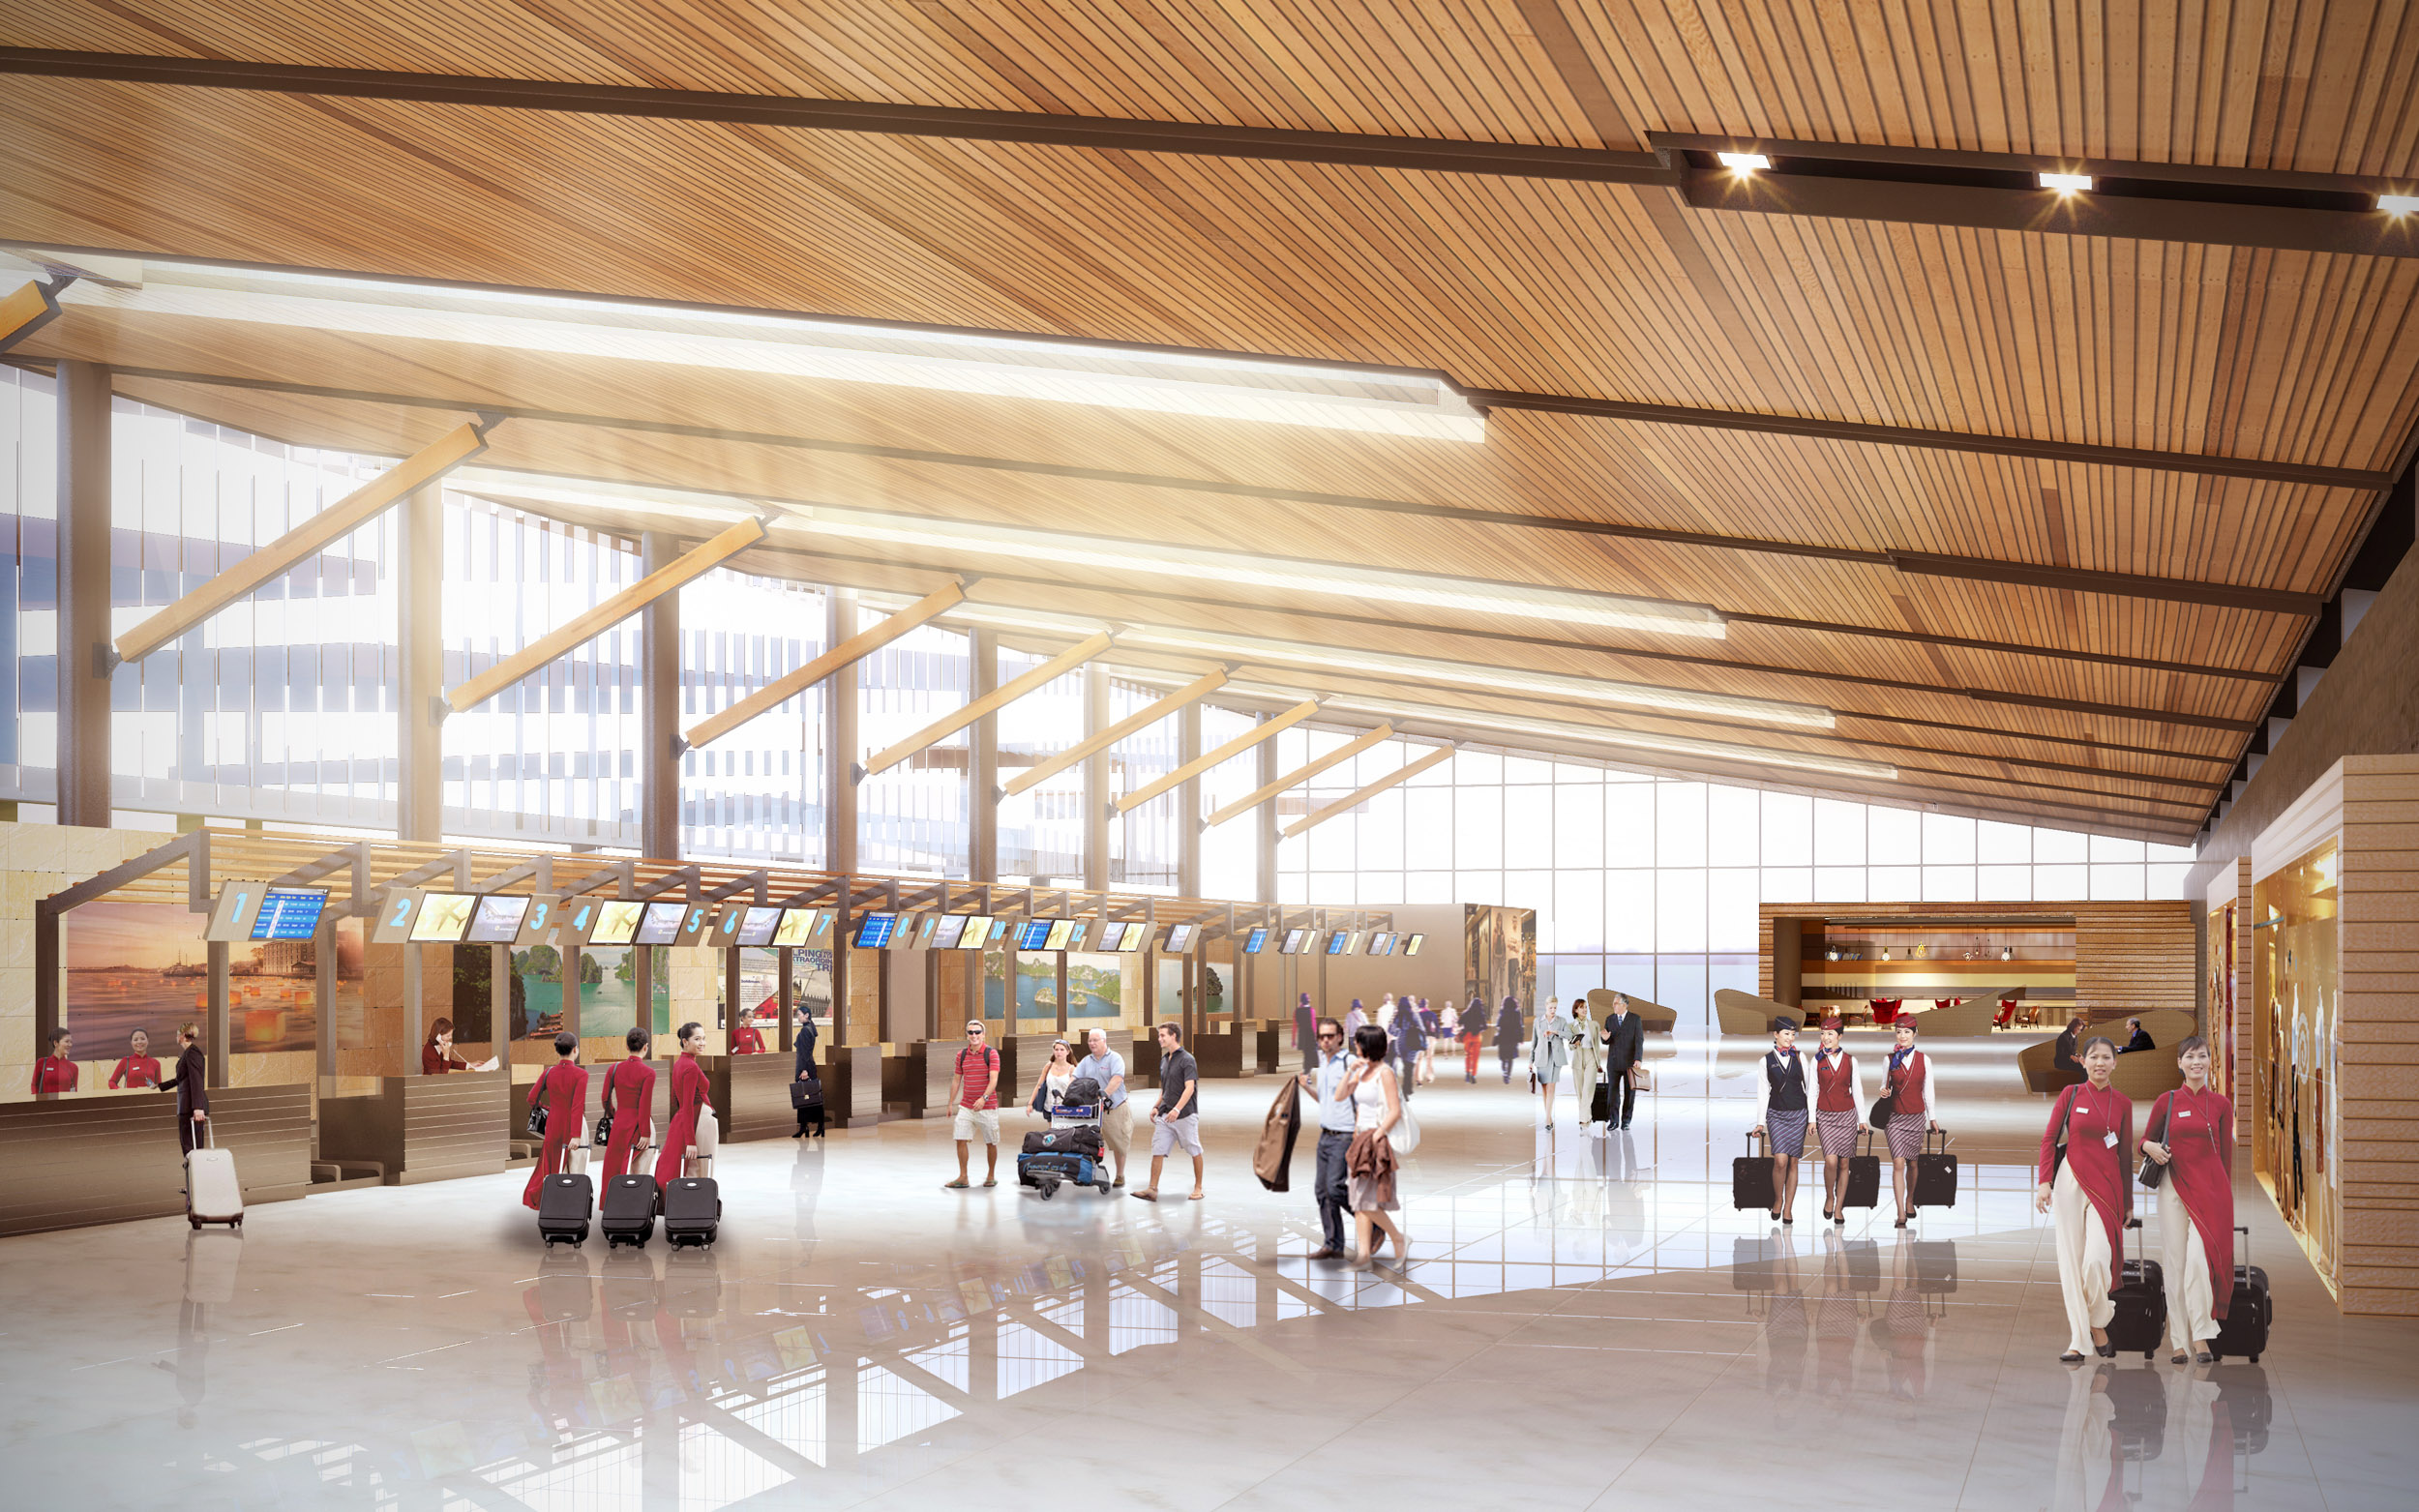 Vietnam Airport Scheme 5_building_Check-in Hall_04 b-web.jpg